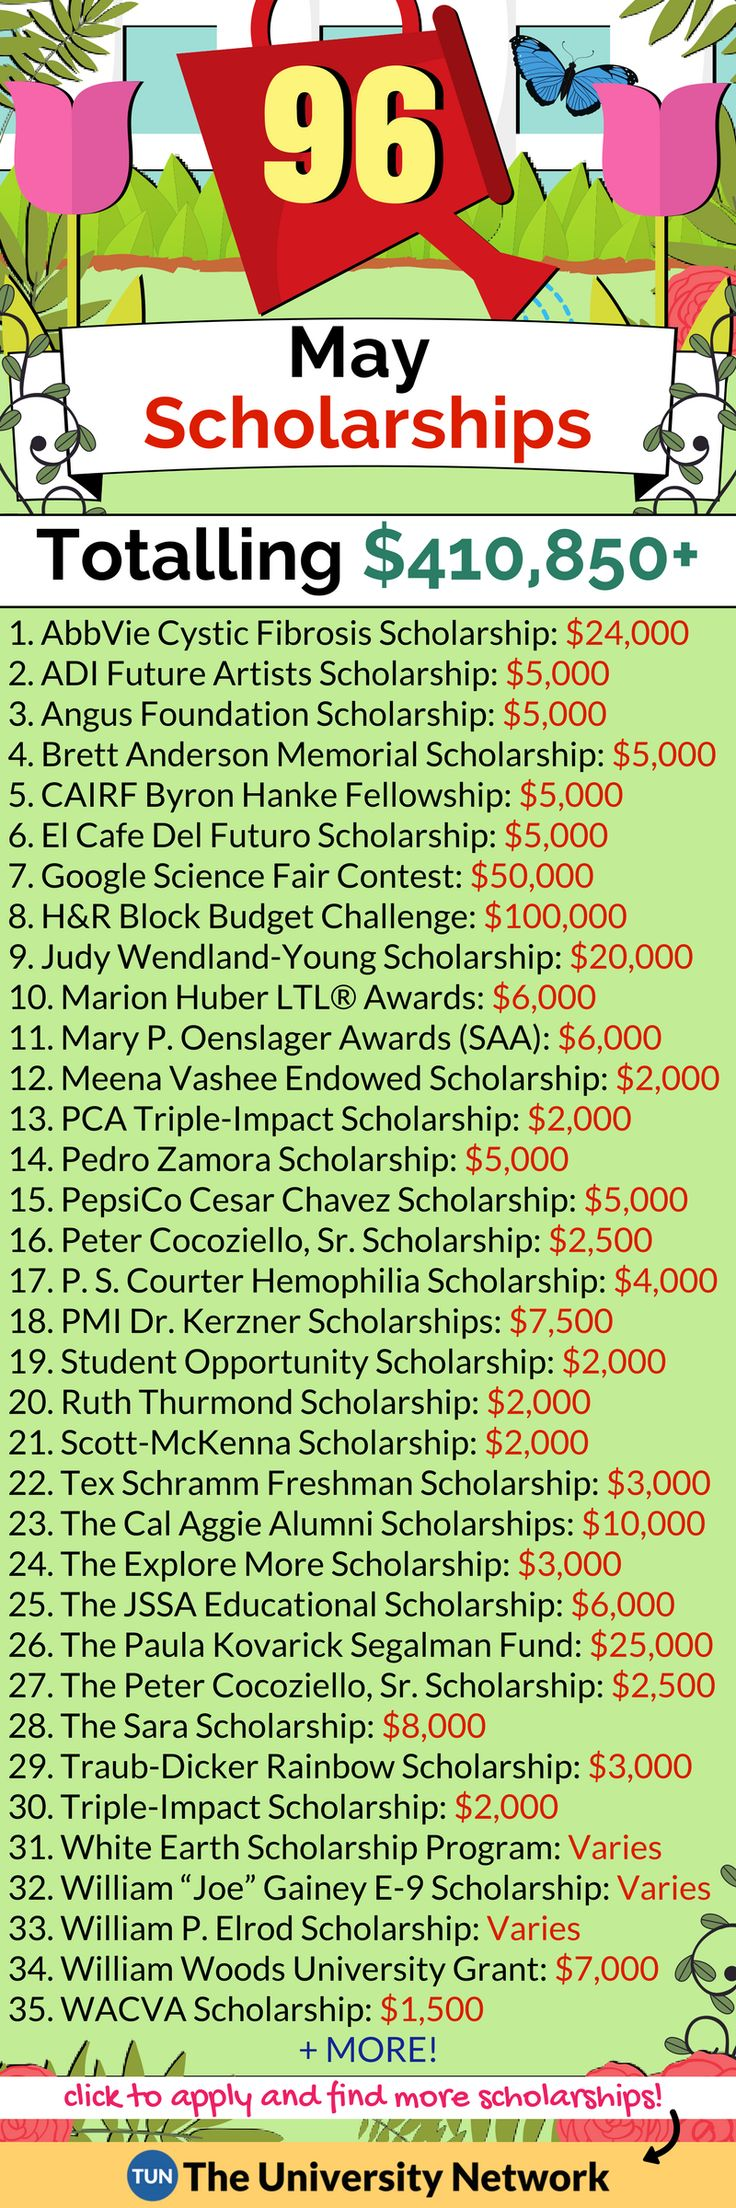 Here is a selected list of May 2018 Scholarships.